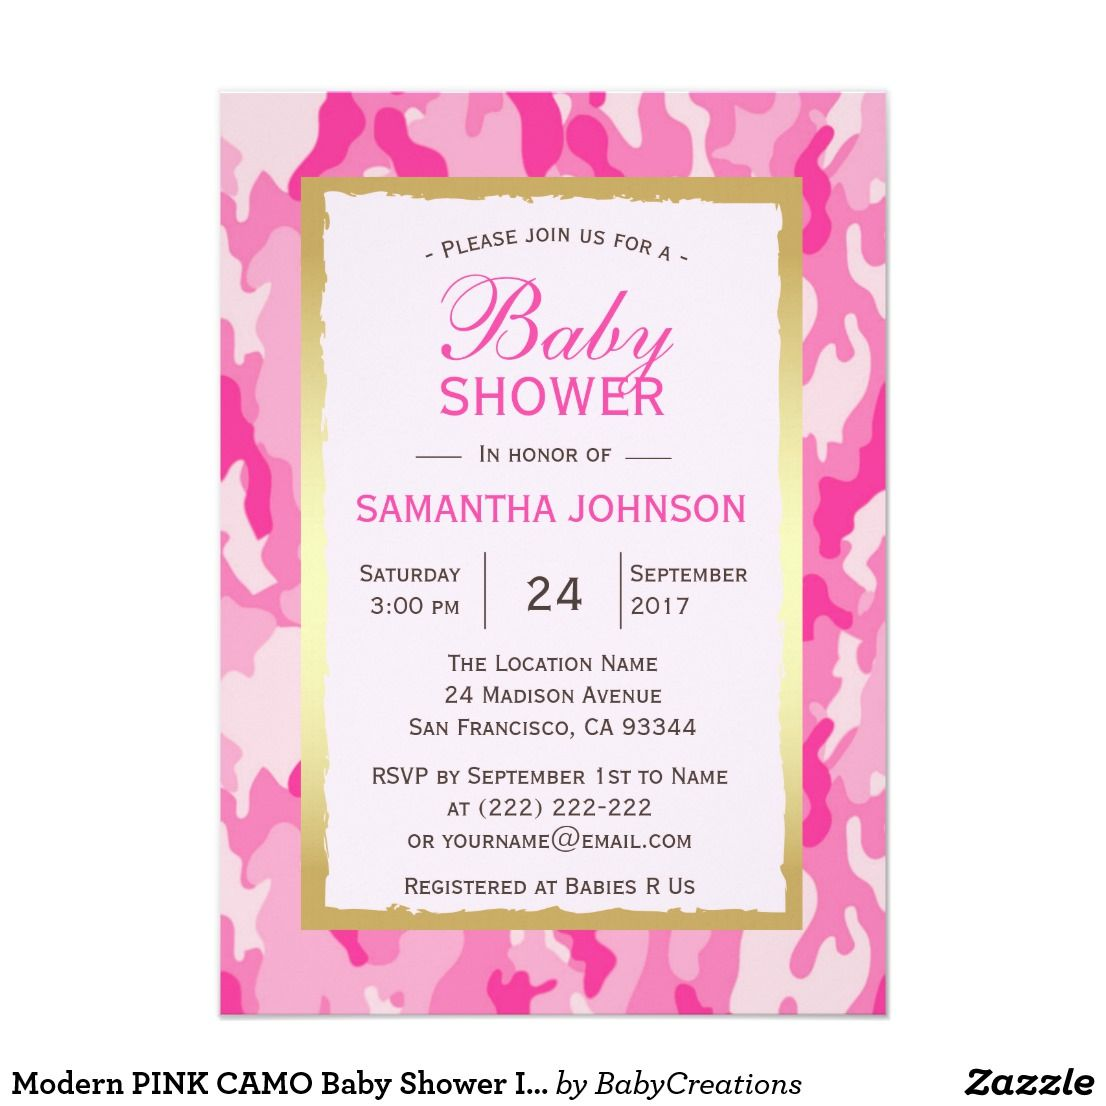 Modern PINK CAMO Baby Shower Invitations - Girl Lovely modern and ...